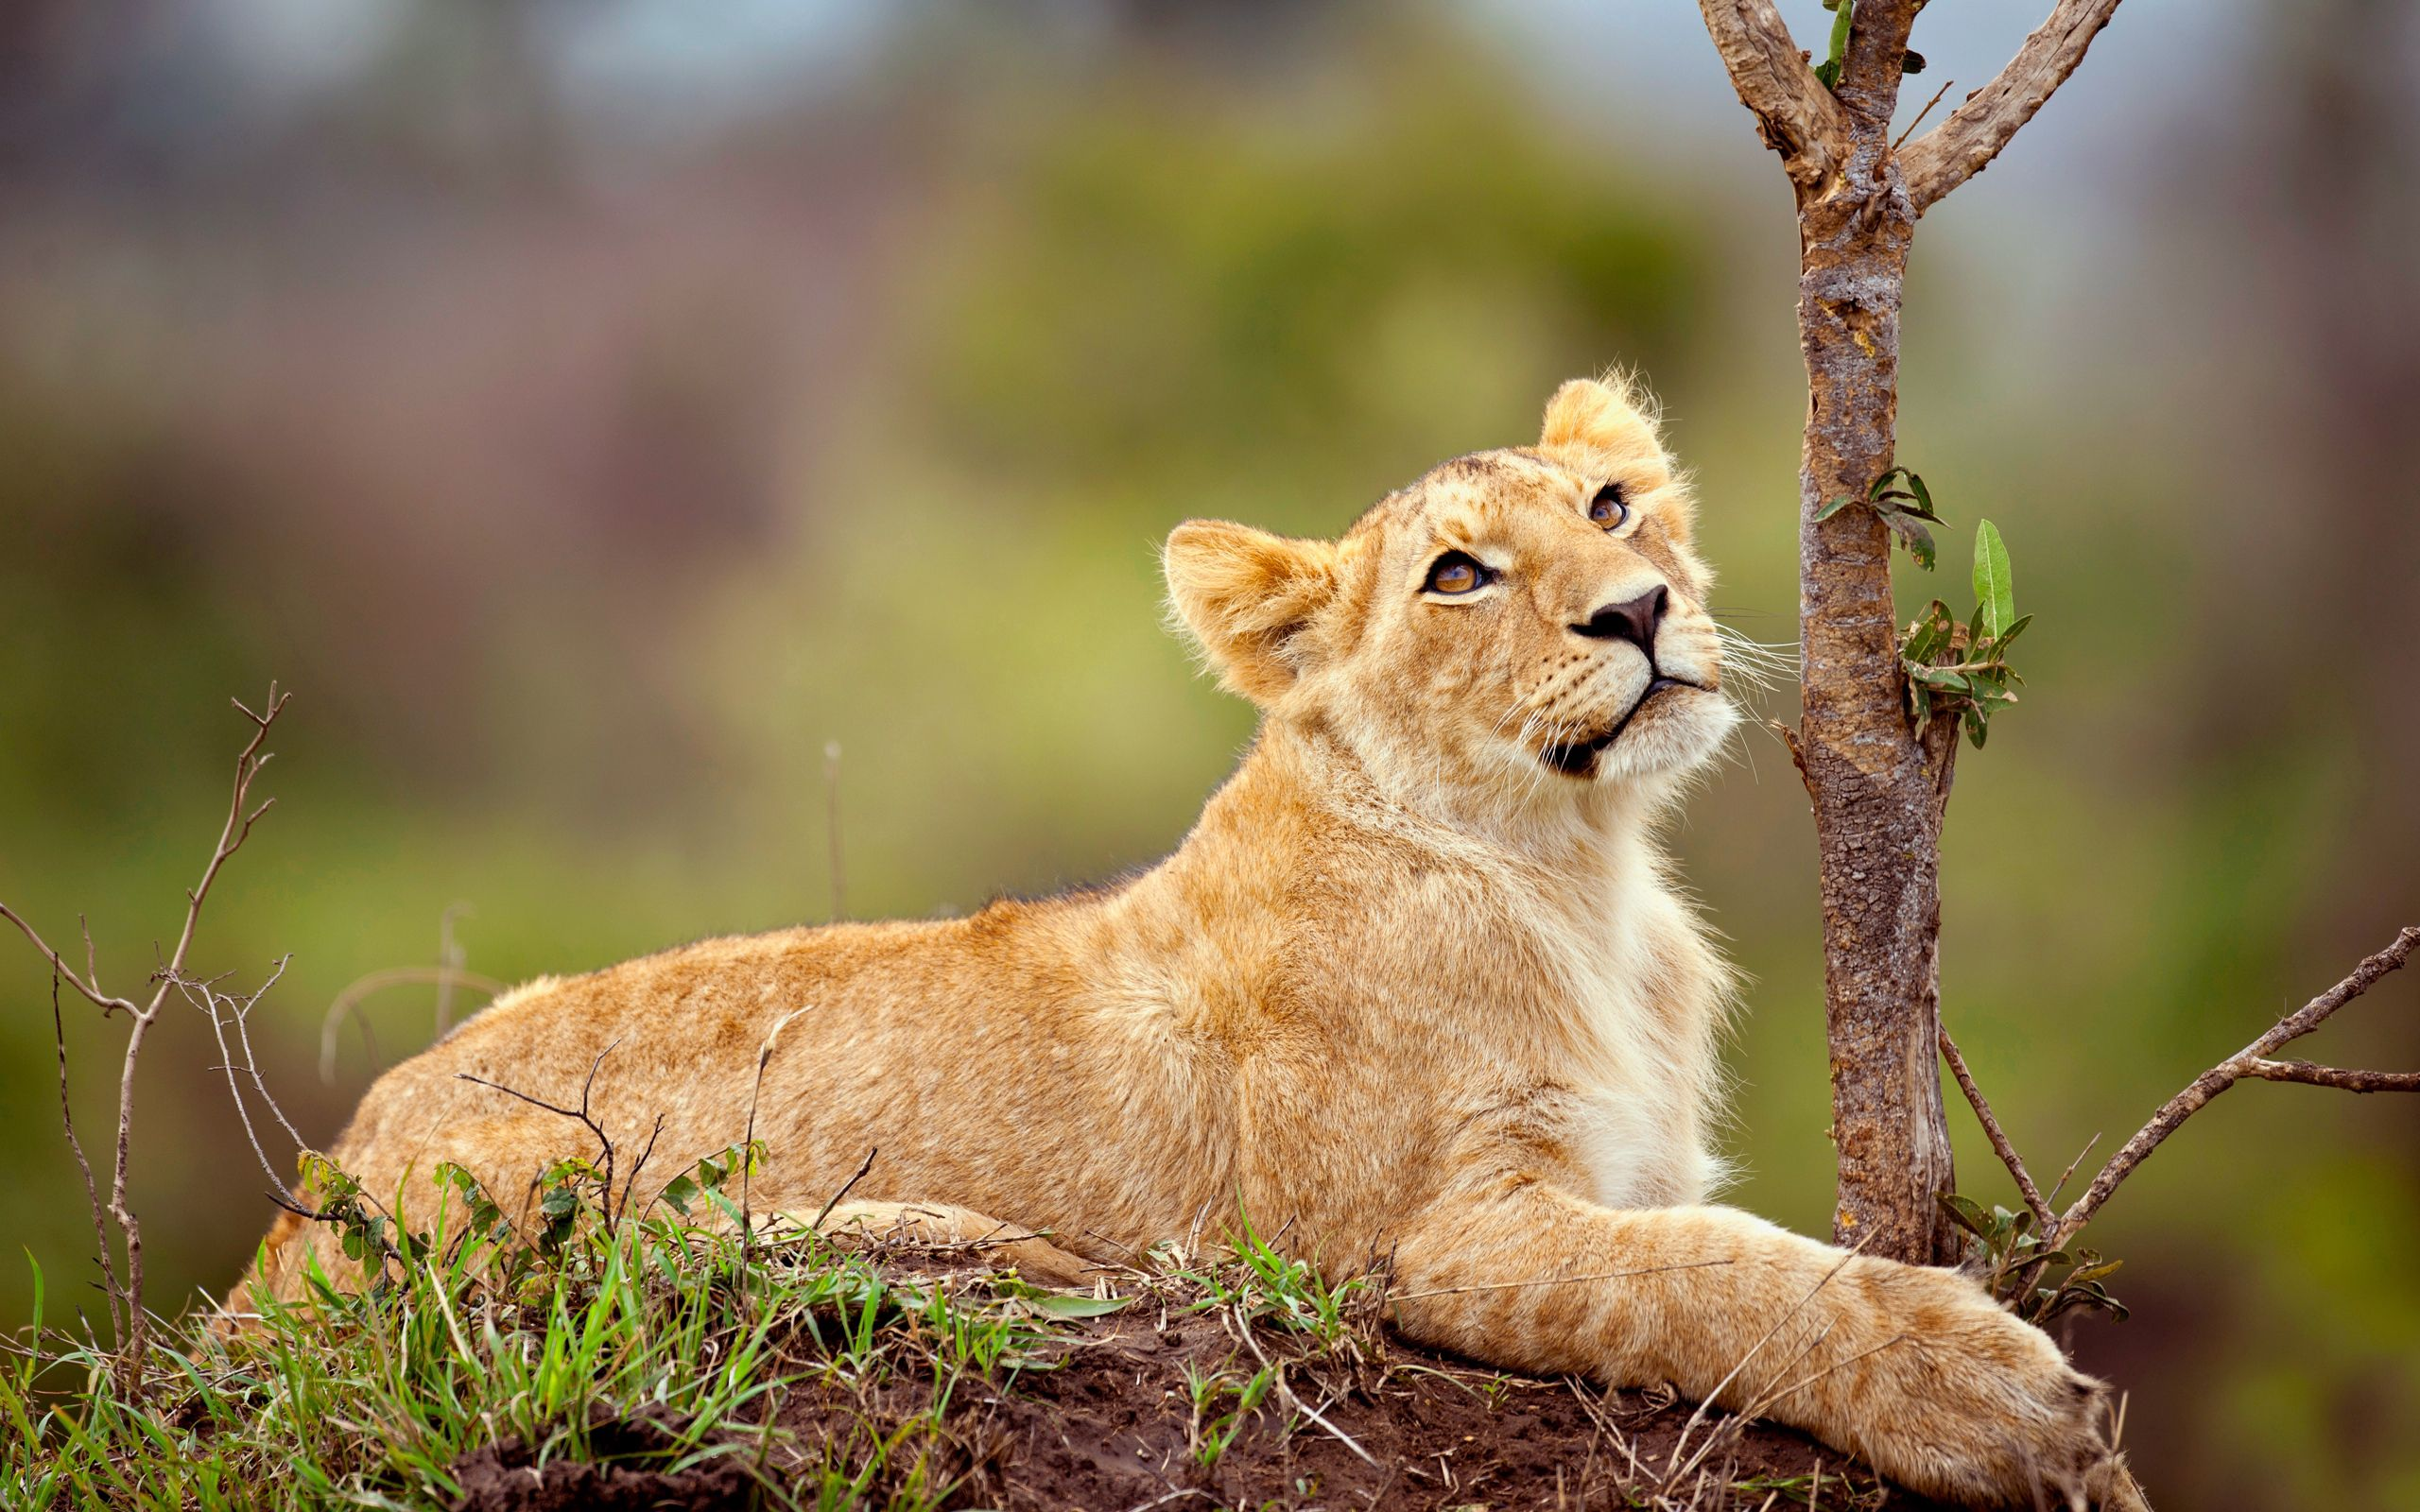 81082 download wallpaper Animals, Lion Cub, Lion, Young, Joey, Grass, Branch, To Lie Down, Lie screensavers and pictures for free